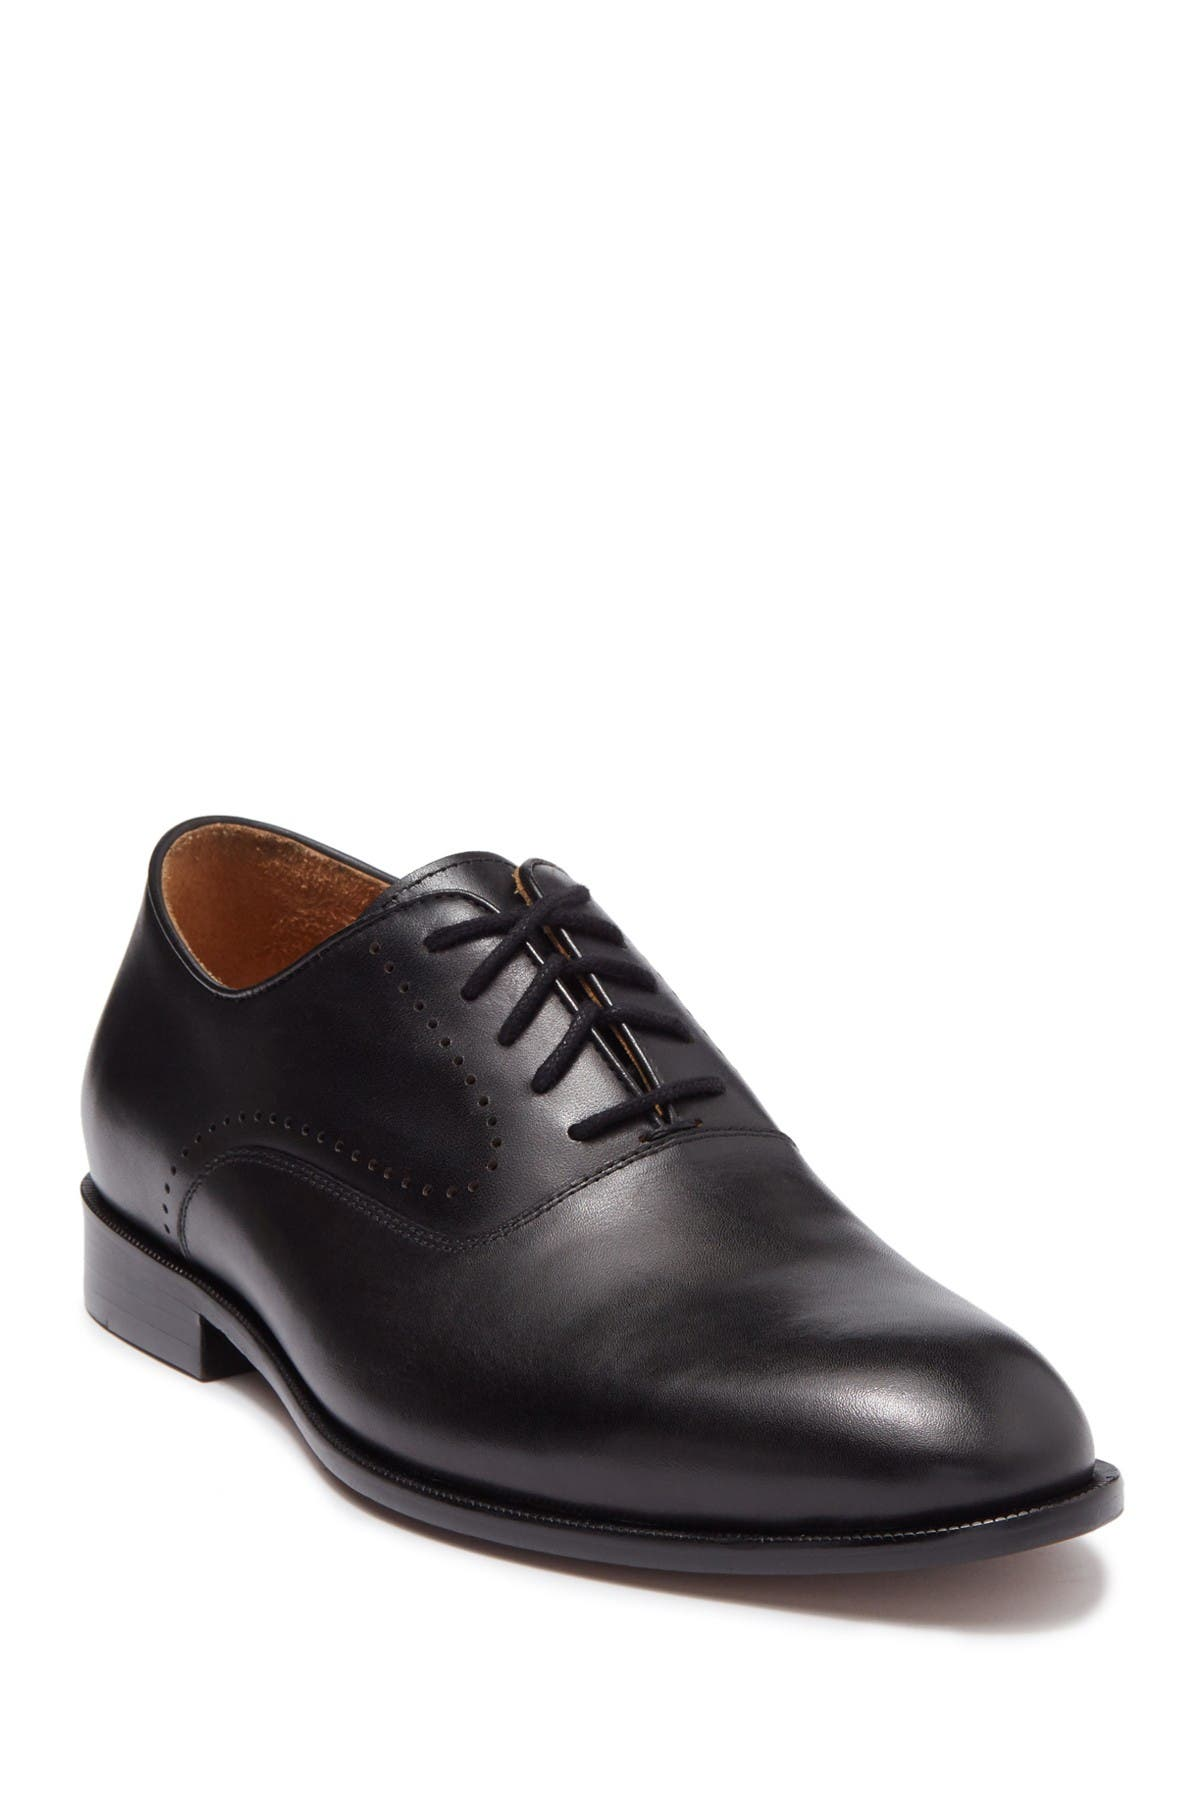 Image of Curatore Amante Leather Shoe